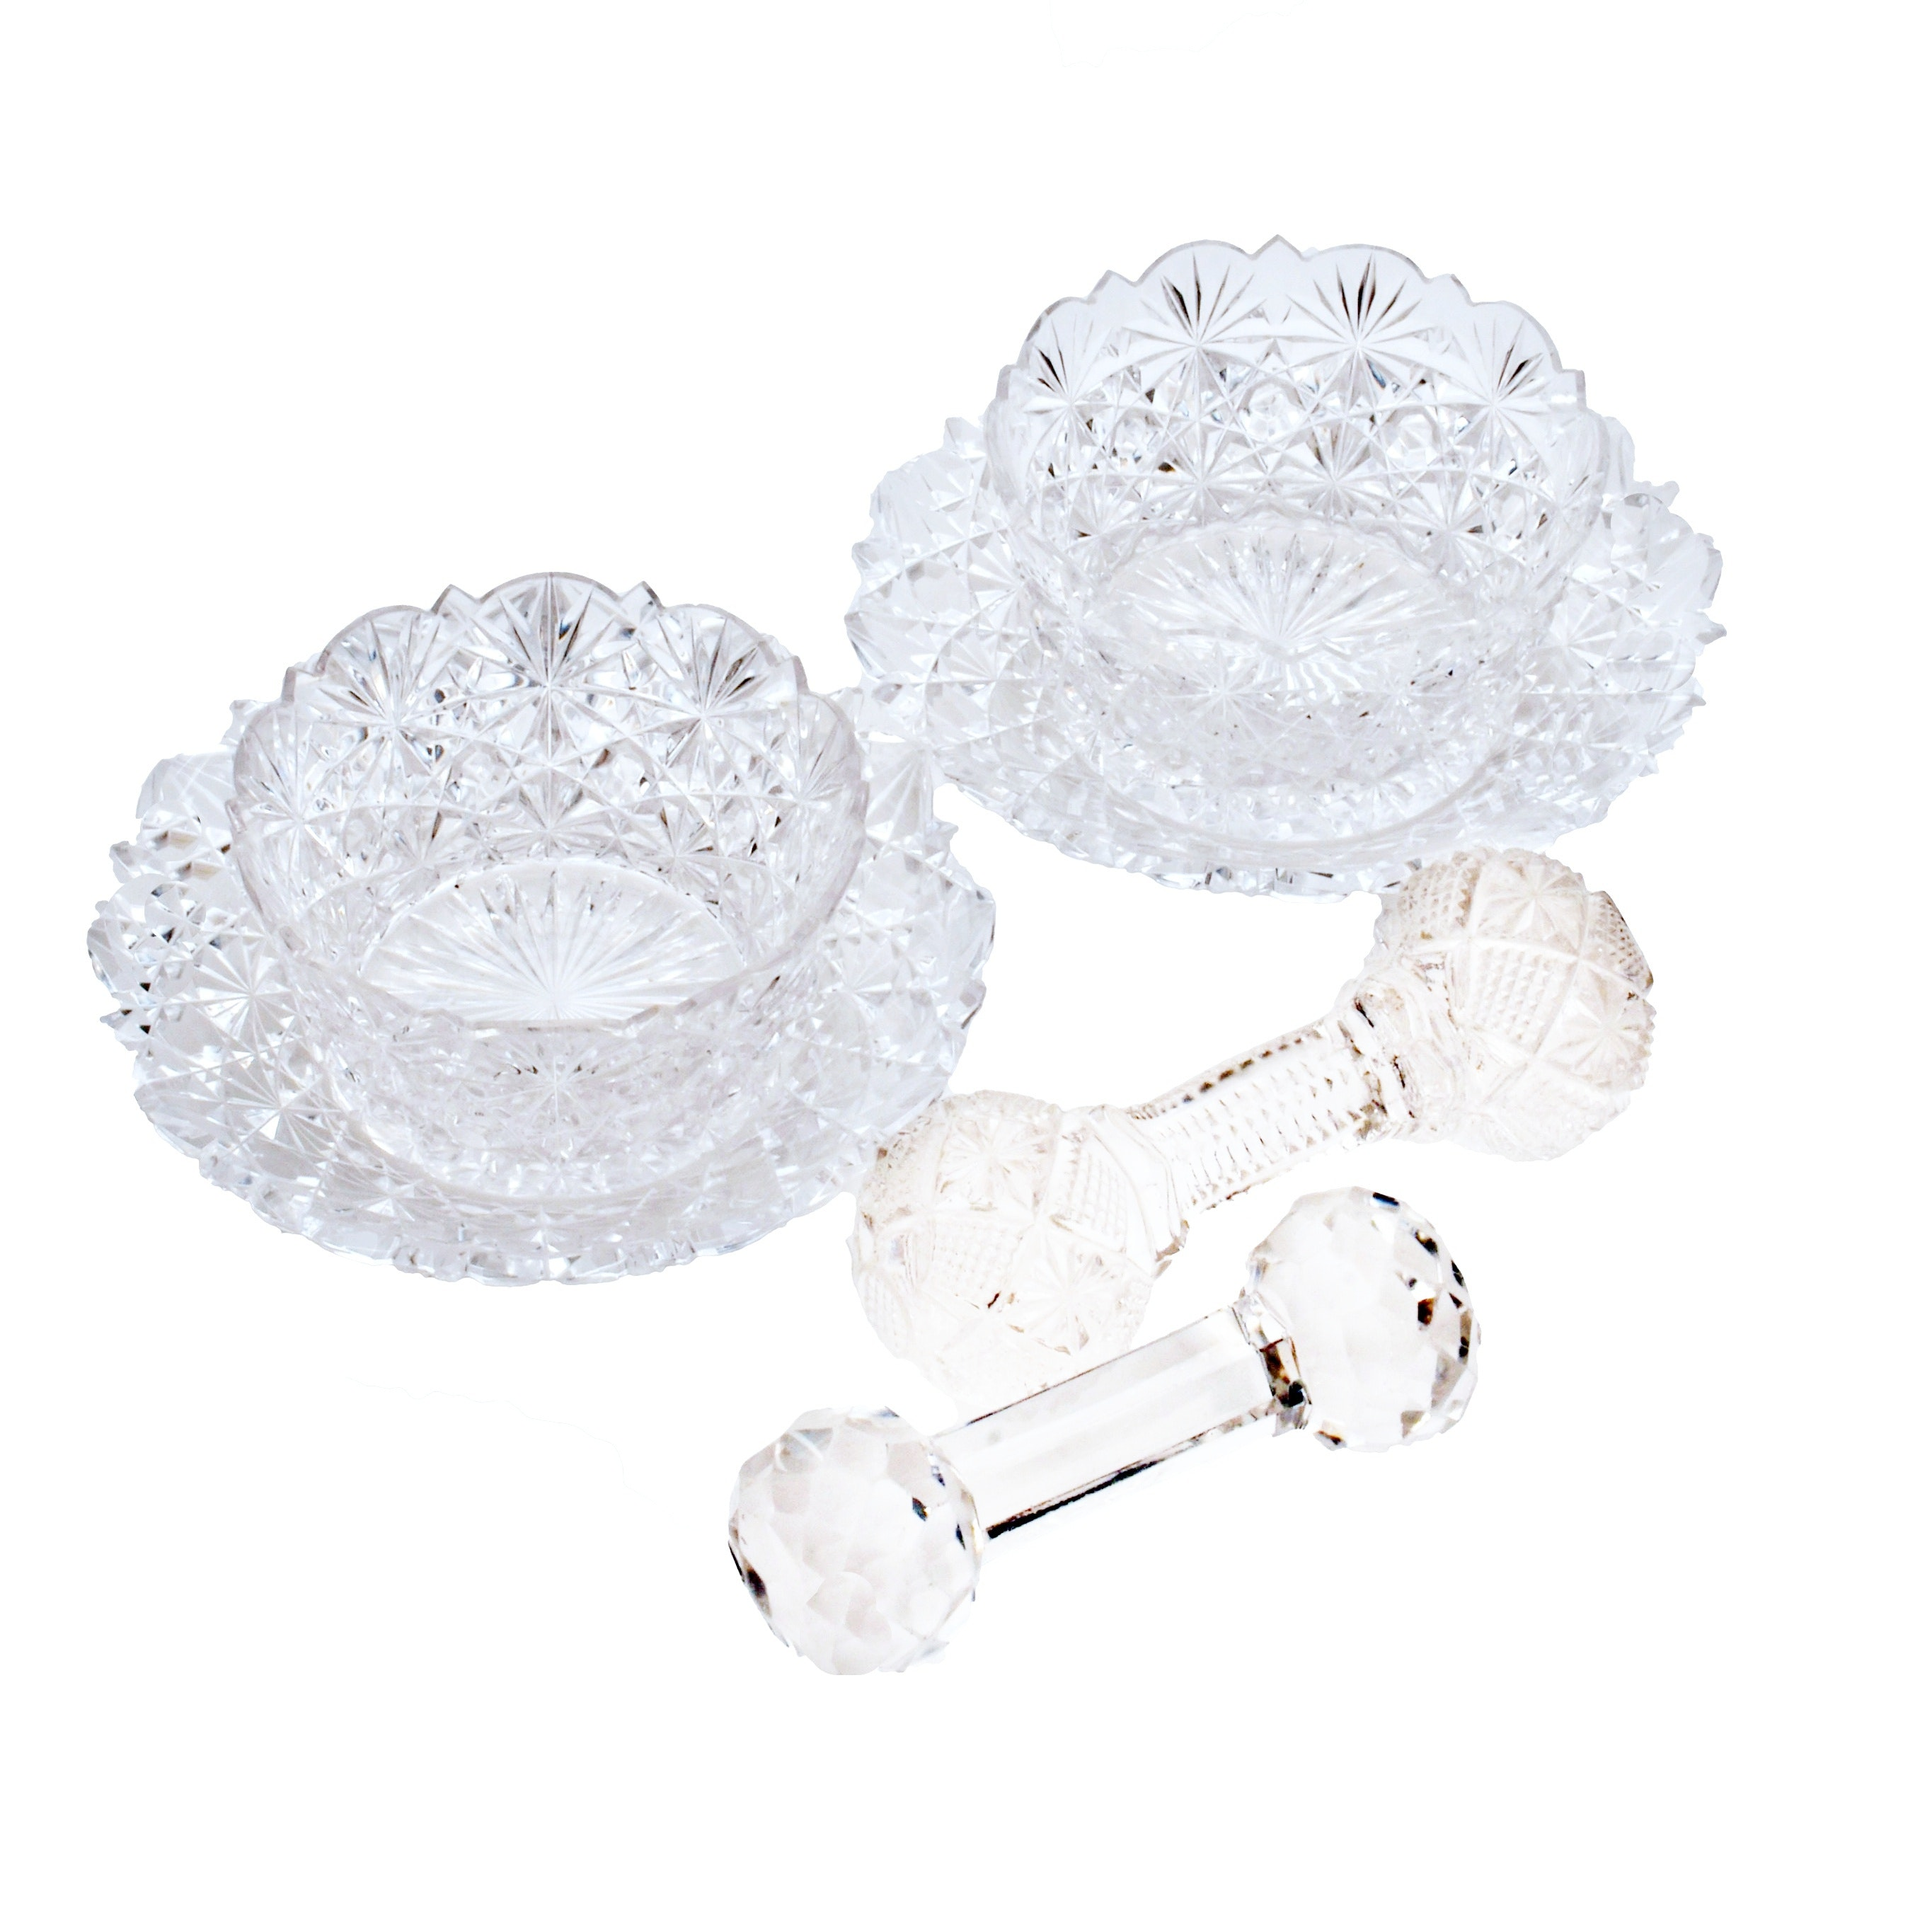 American Brilliant Style Crystal Cut Glass Sauce Cups With Rests